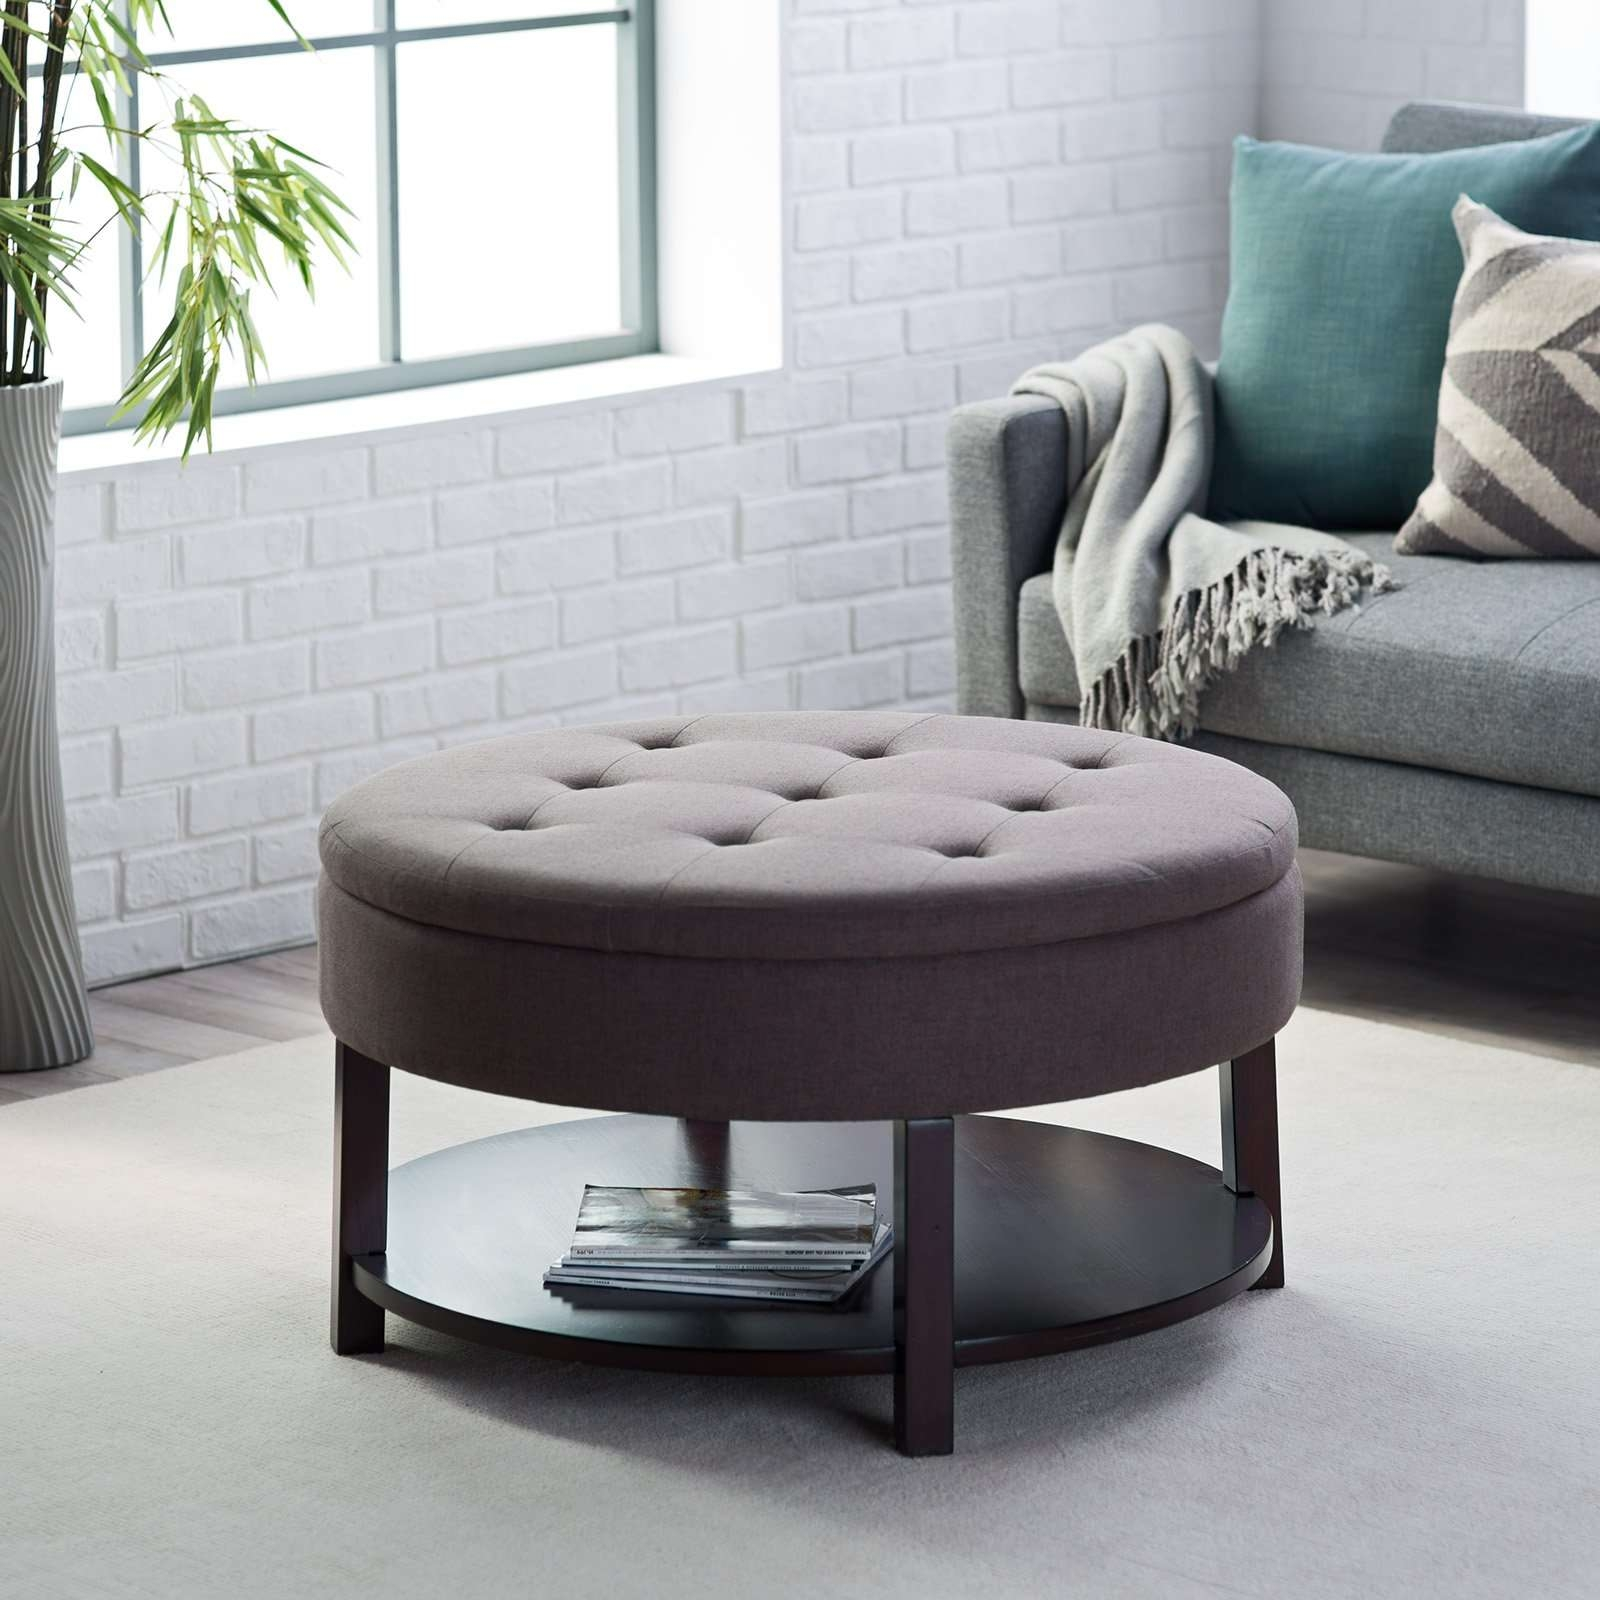 Coffee Table : Amazing Footstool Coffee Table Footstool Coffee Intended For Favorite Round Upholstered Coffee Tables (View 12 of 20)